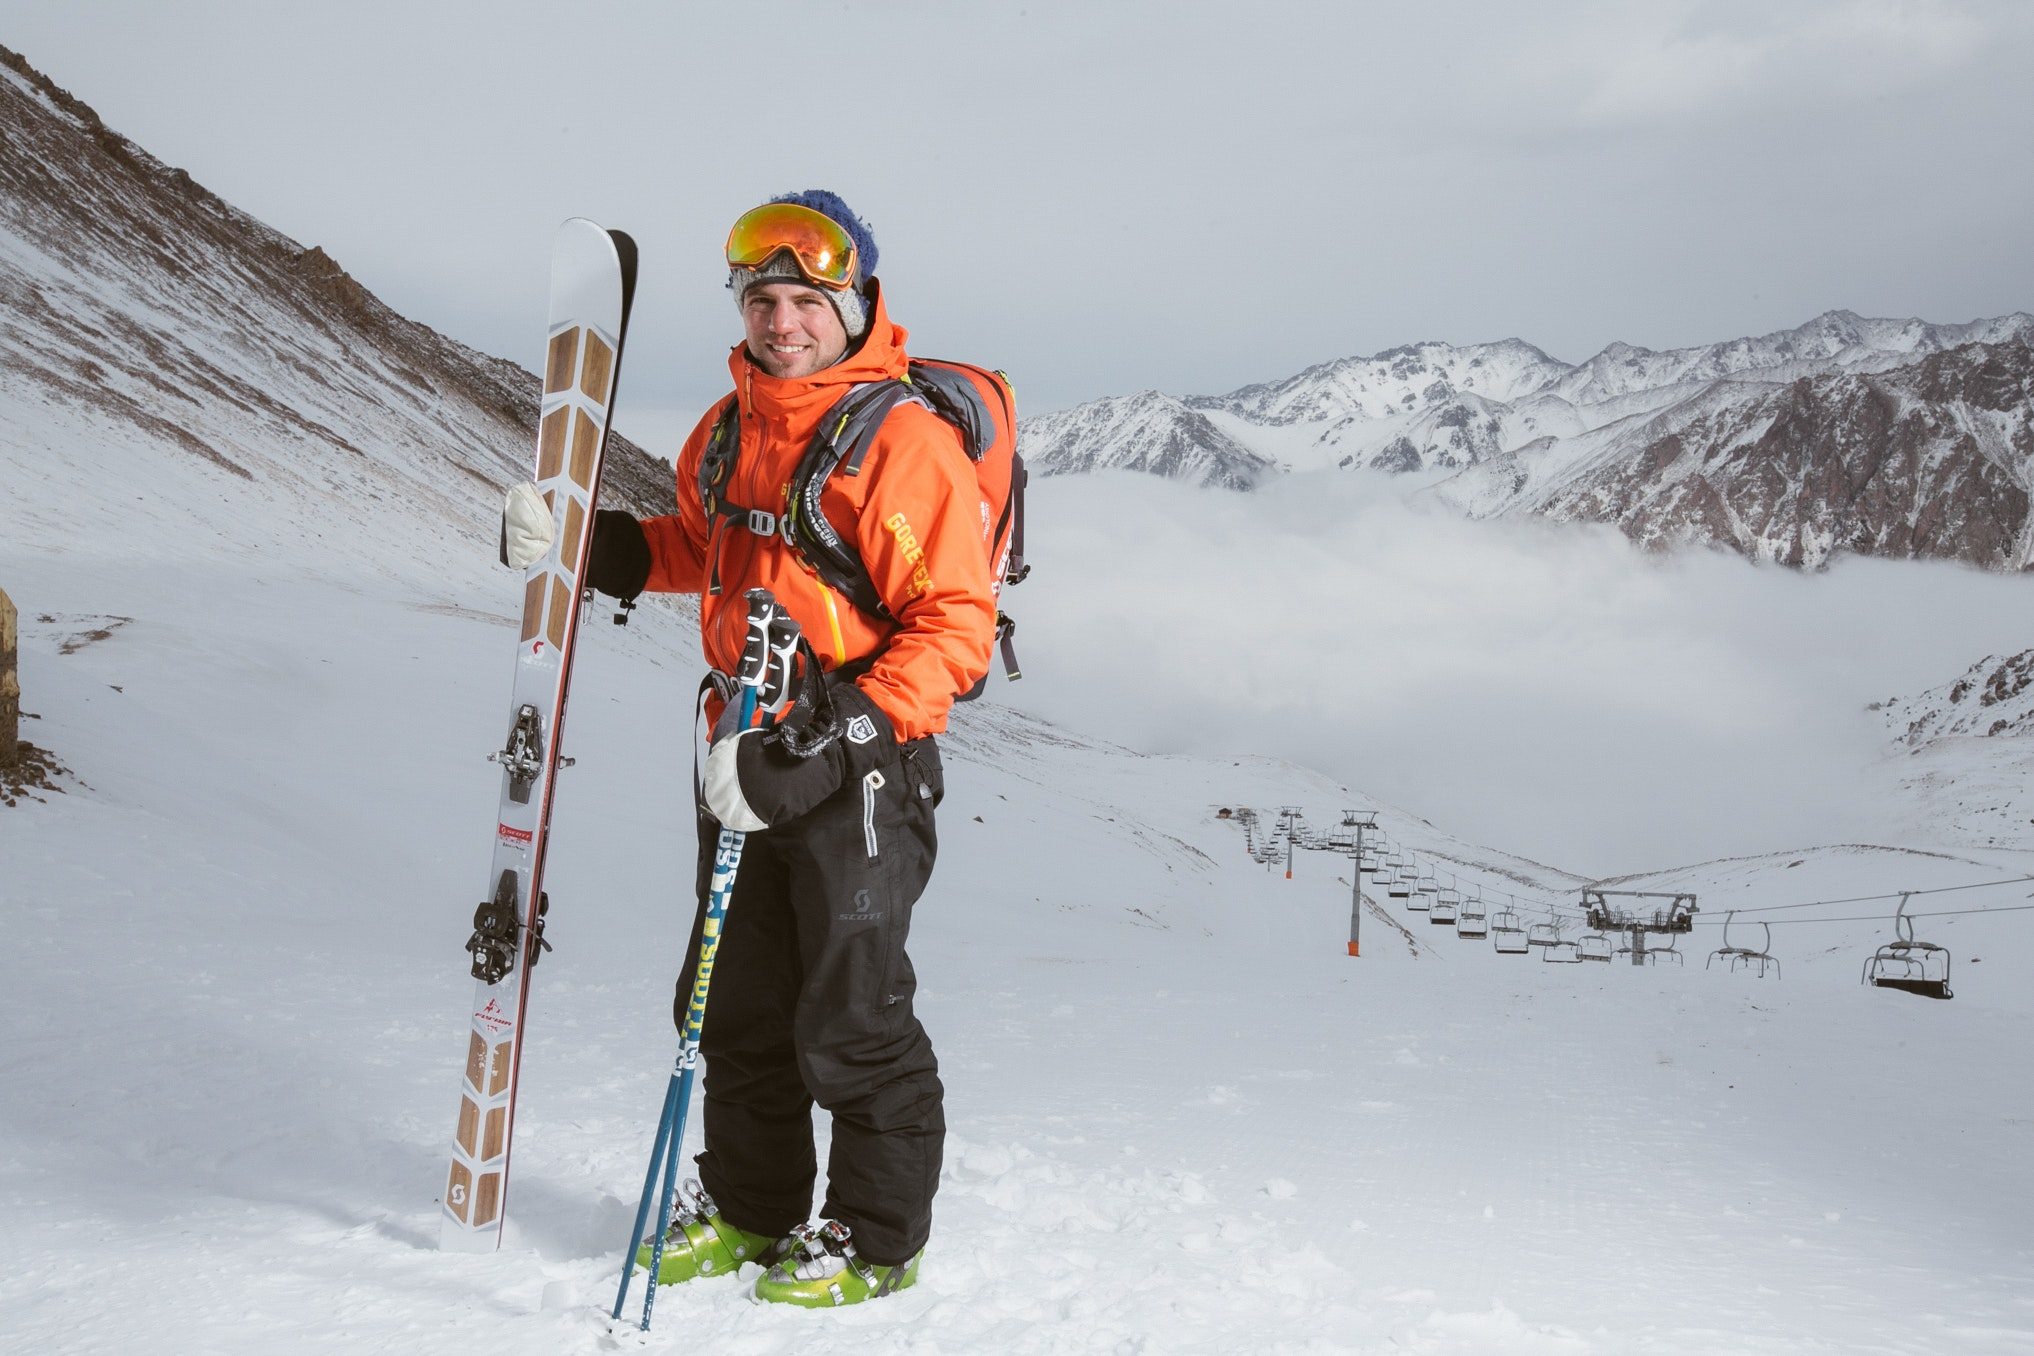 Man wearing orange and black snowsuit with ski set on snow near cable cars photo